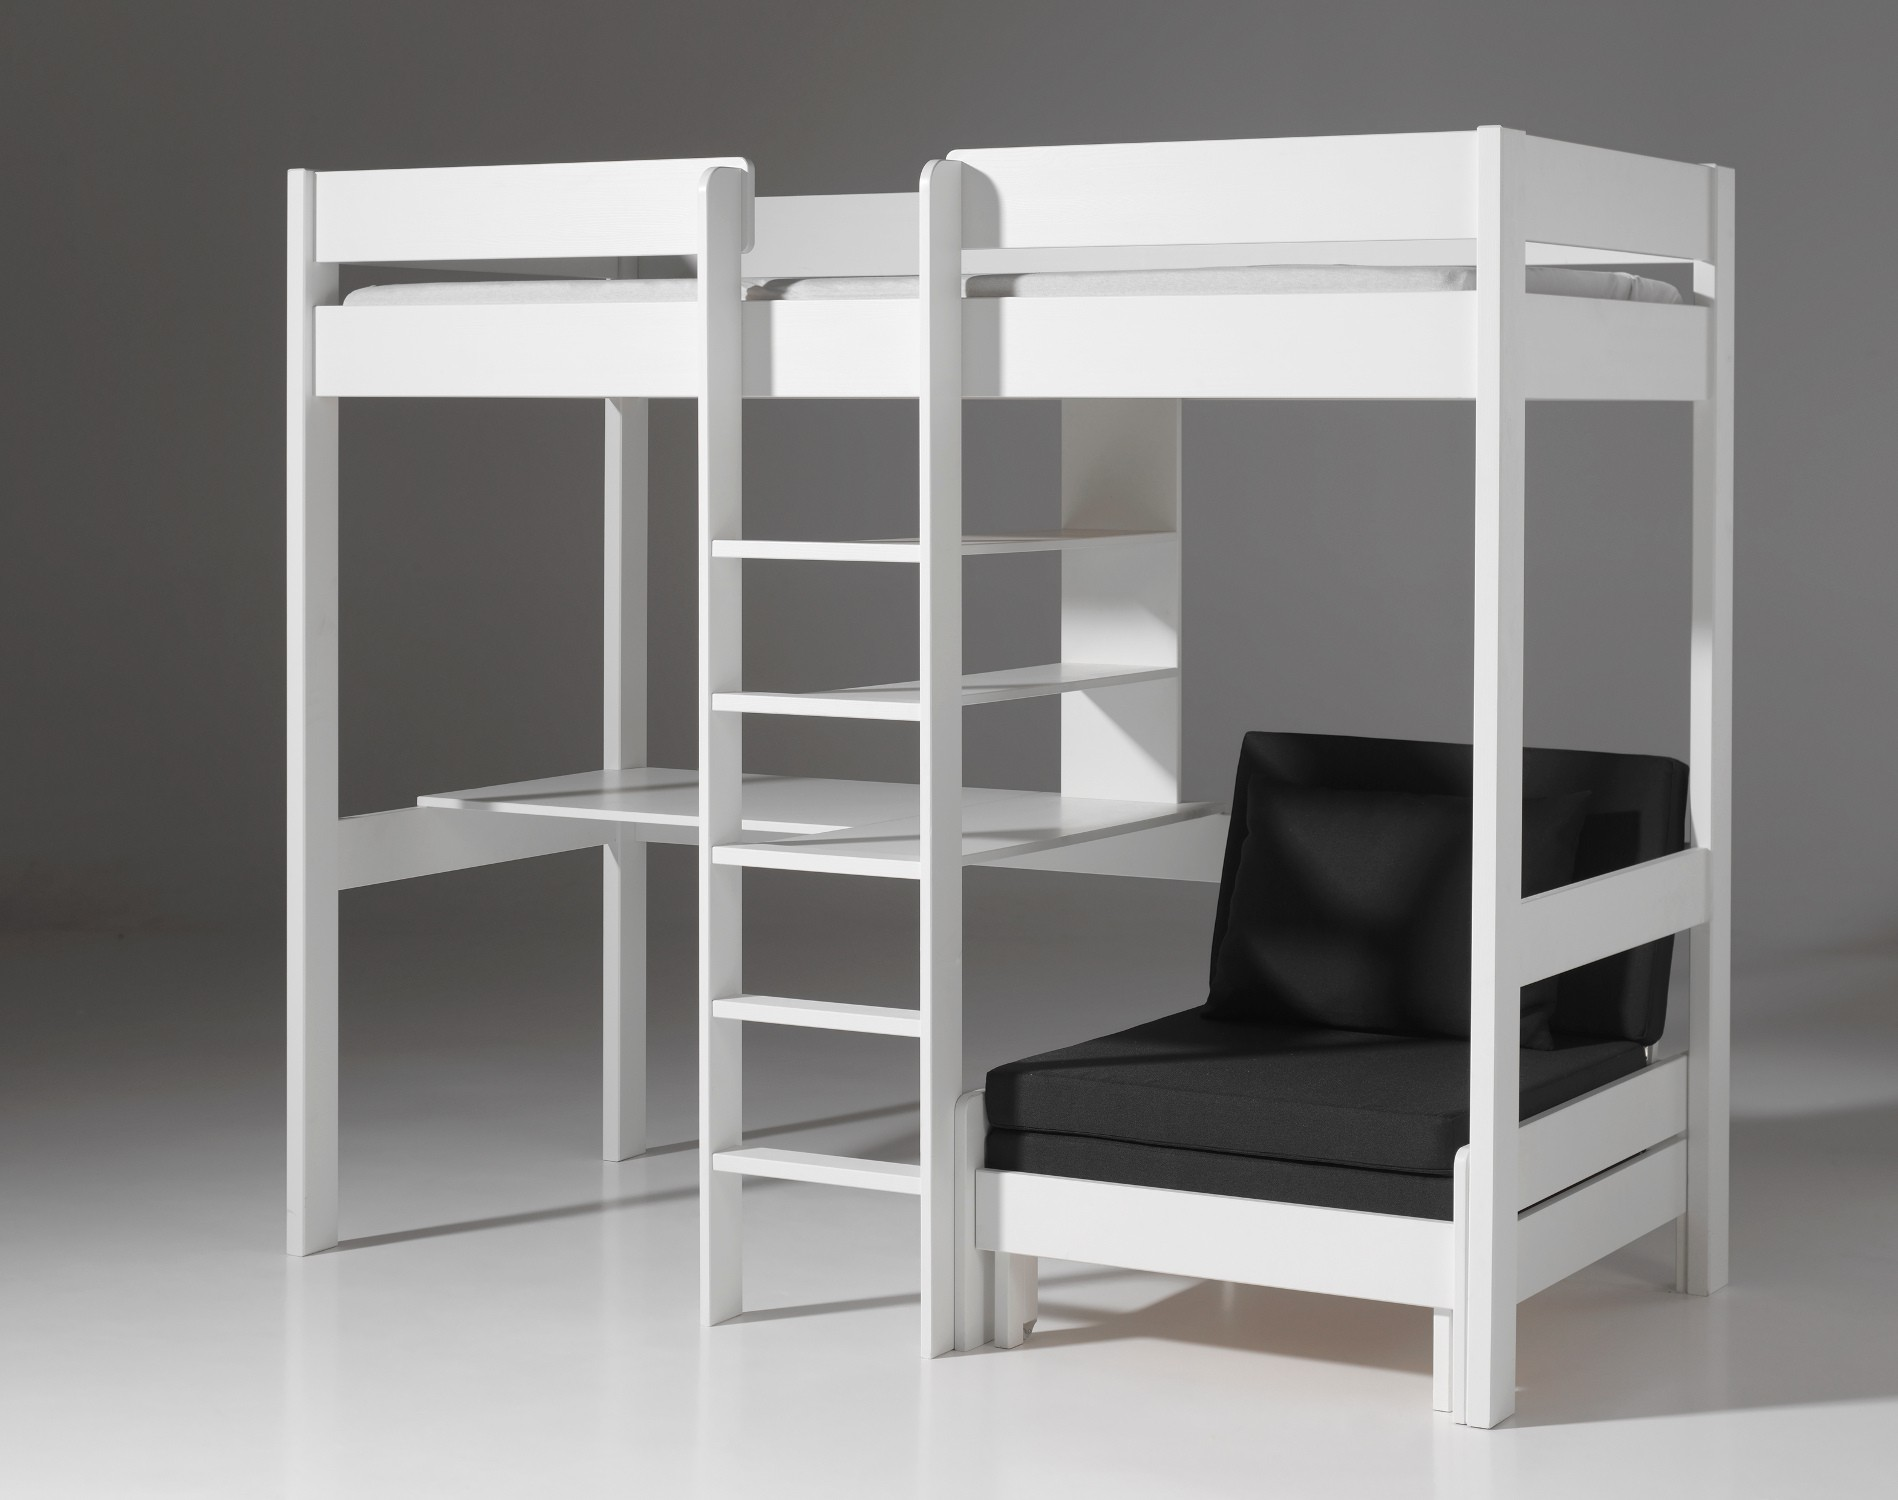 hochbett pino kinderbett multifunktionsbett 90 x 200 cm kiefer weiss 5420070214490 ebay. Black Bedroom Furniture Sets. Home Design Ideas